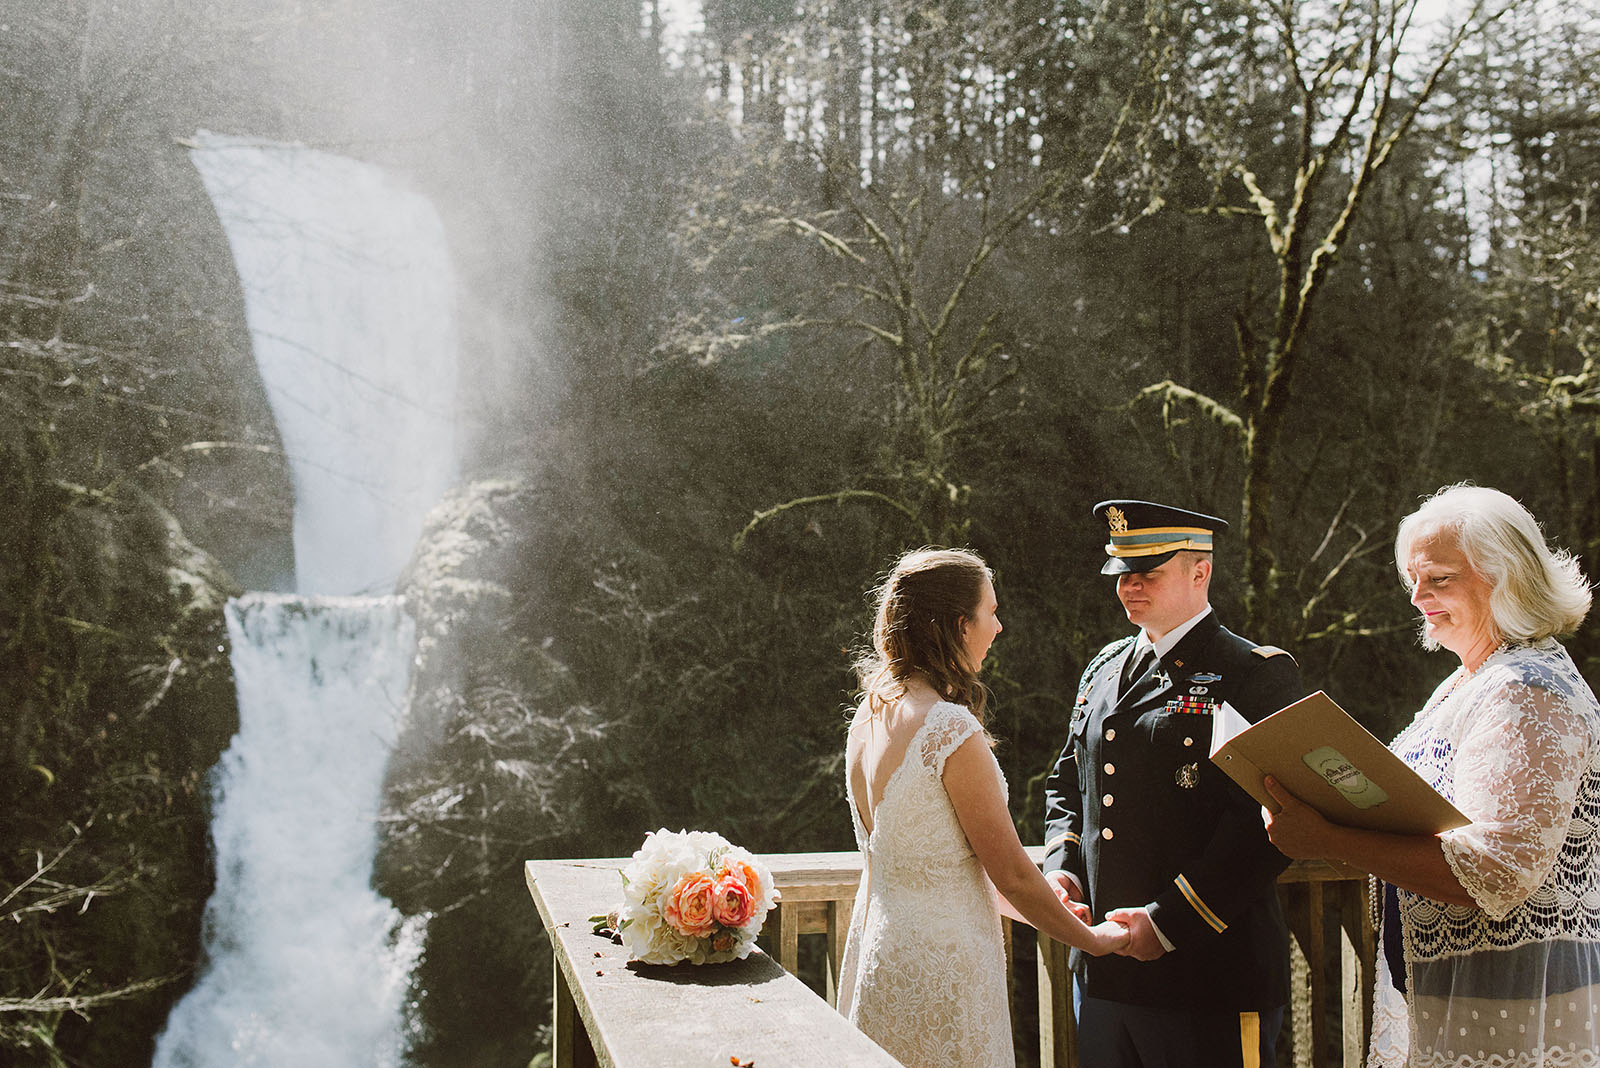 Wedding ceremony in front of a waterfall | Bridal Veil Elopement Photographer